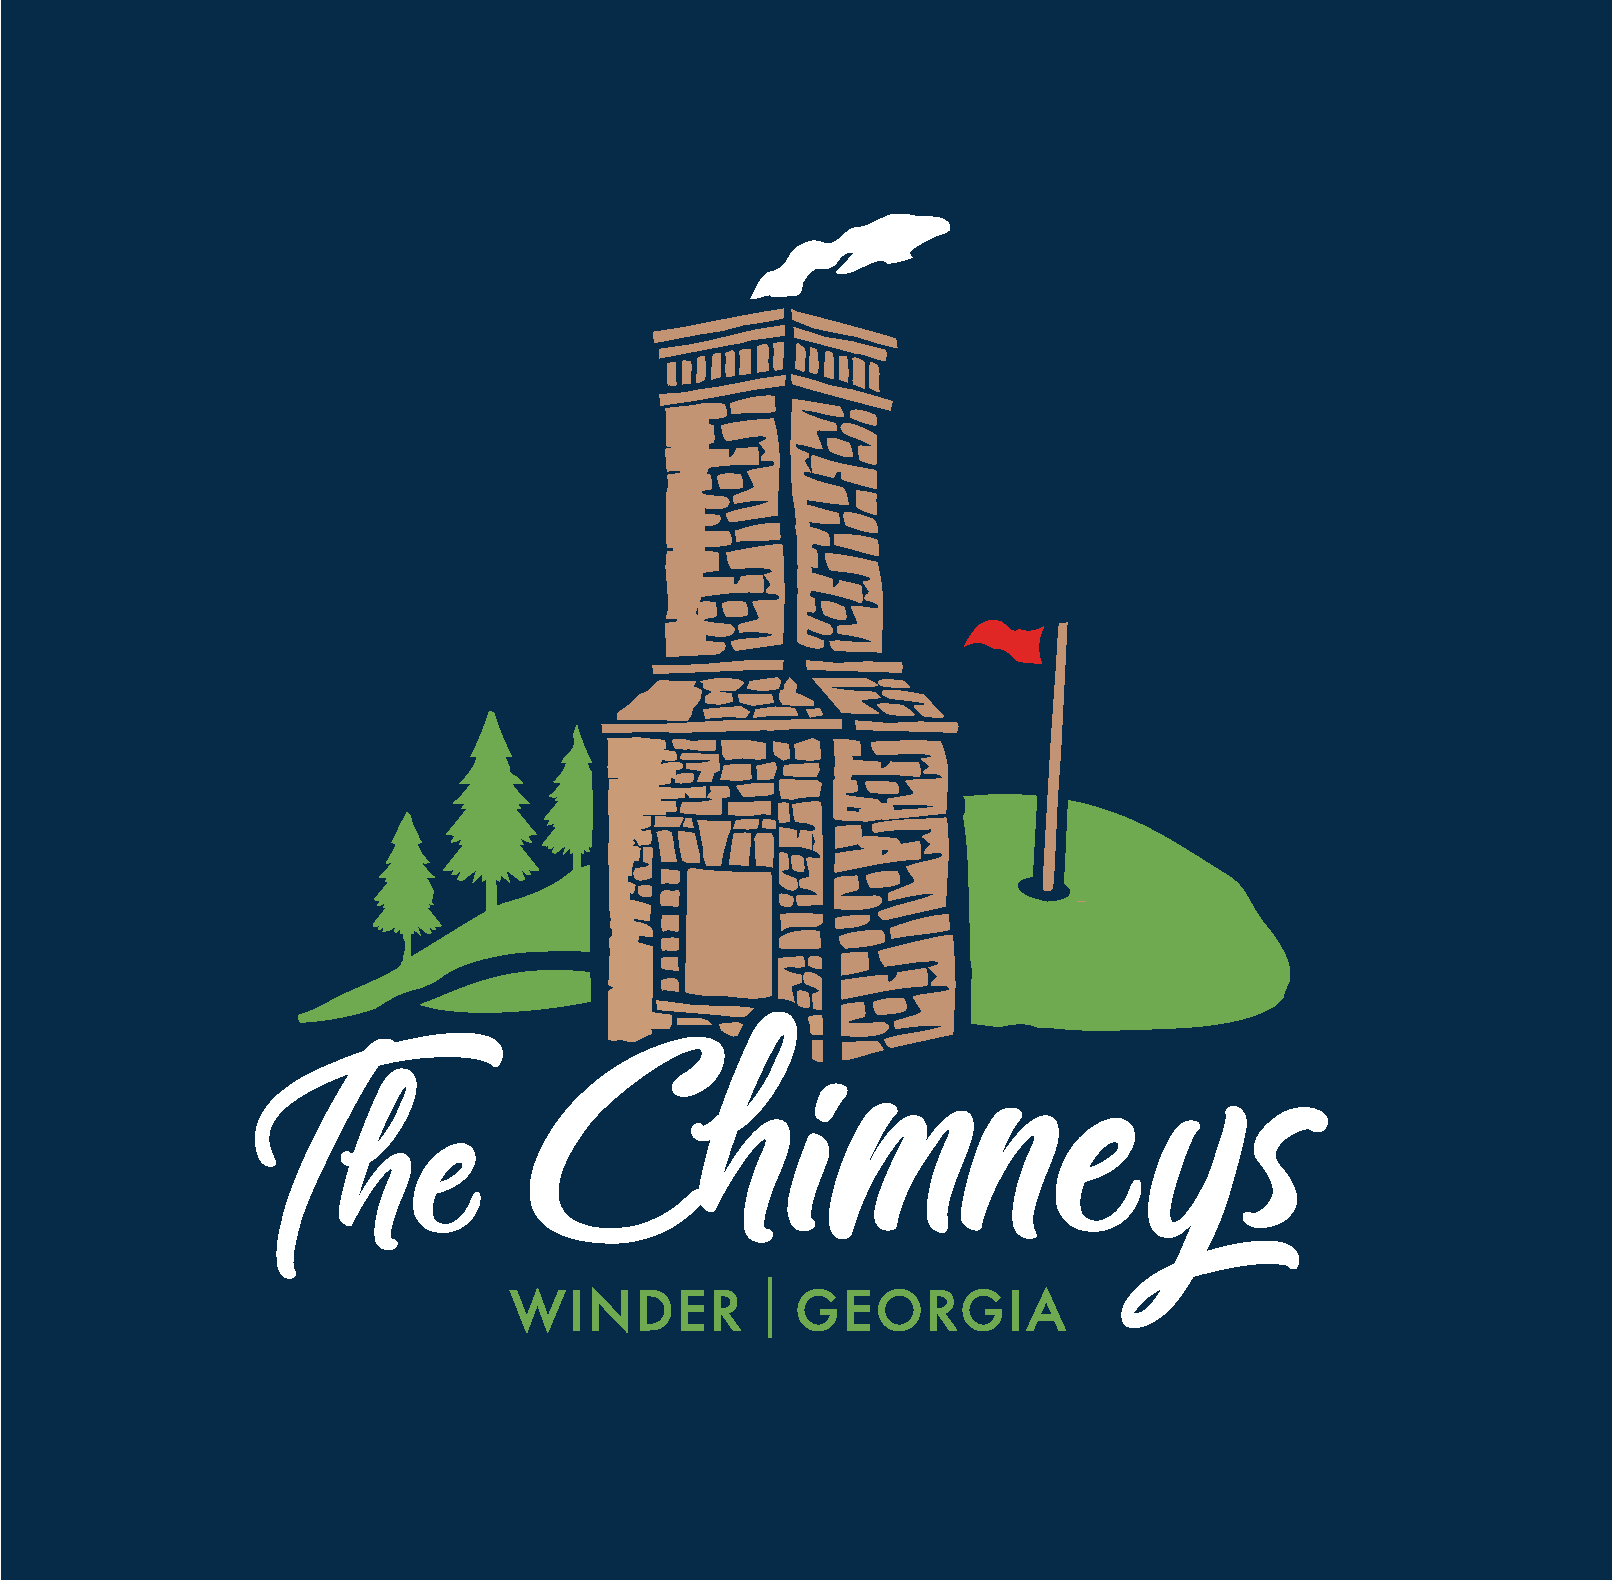 Press Release: Temporary Closing of The Chimneys Golf Course